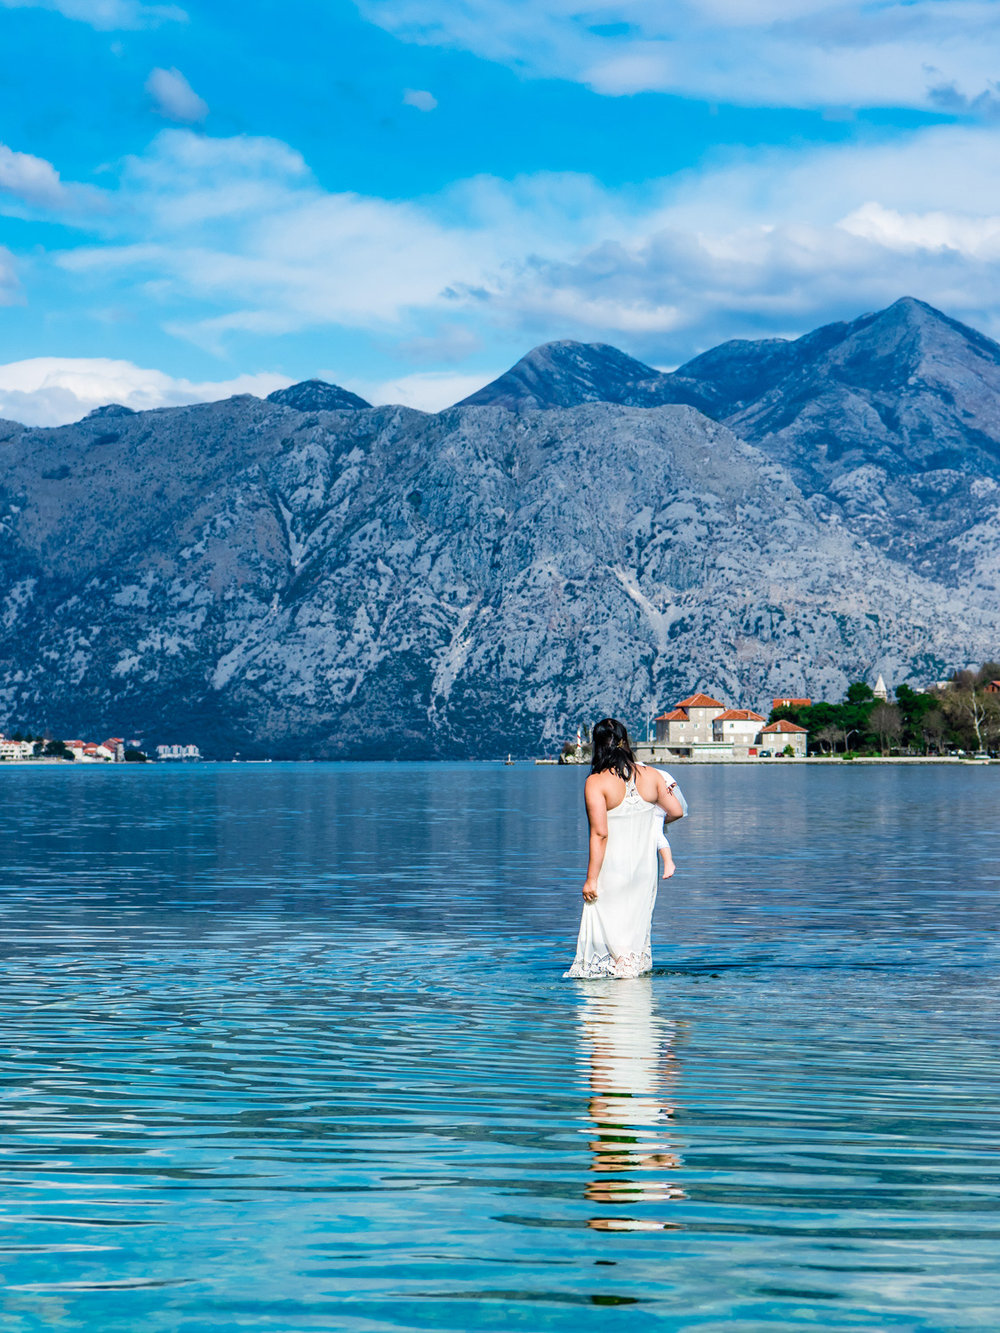 Walking out into the blue water of the Bay of Kotor in Montenegro.